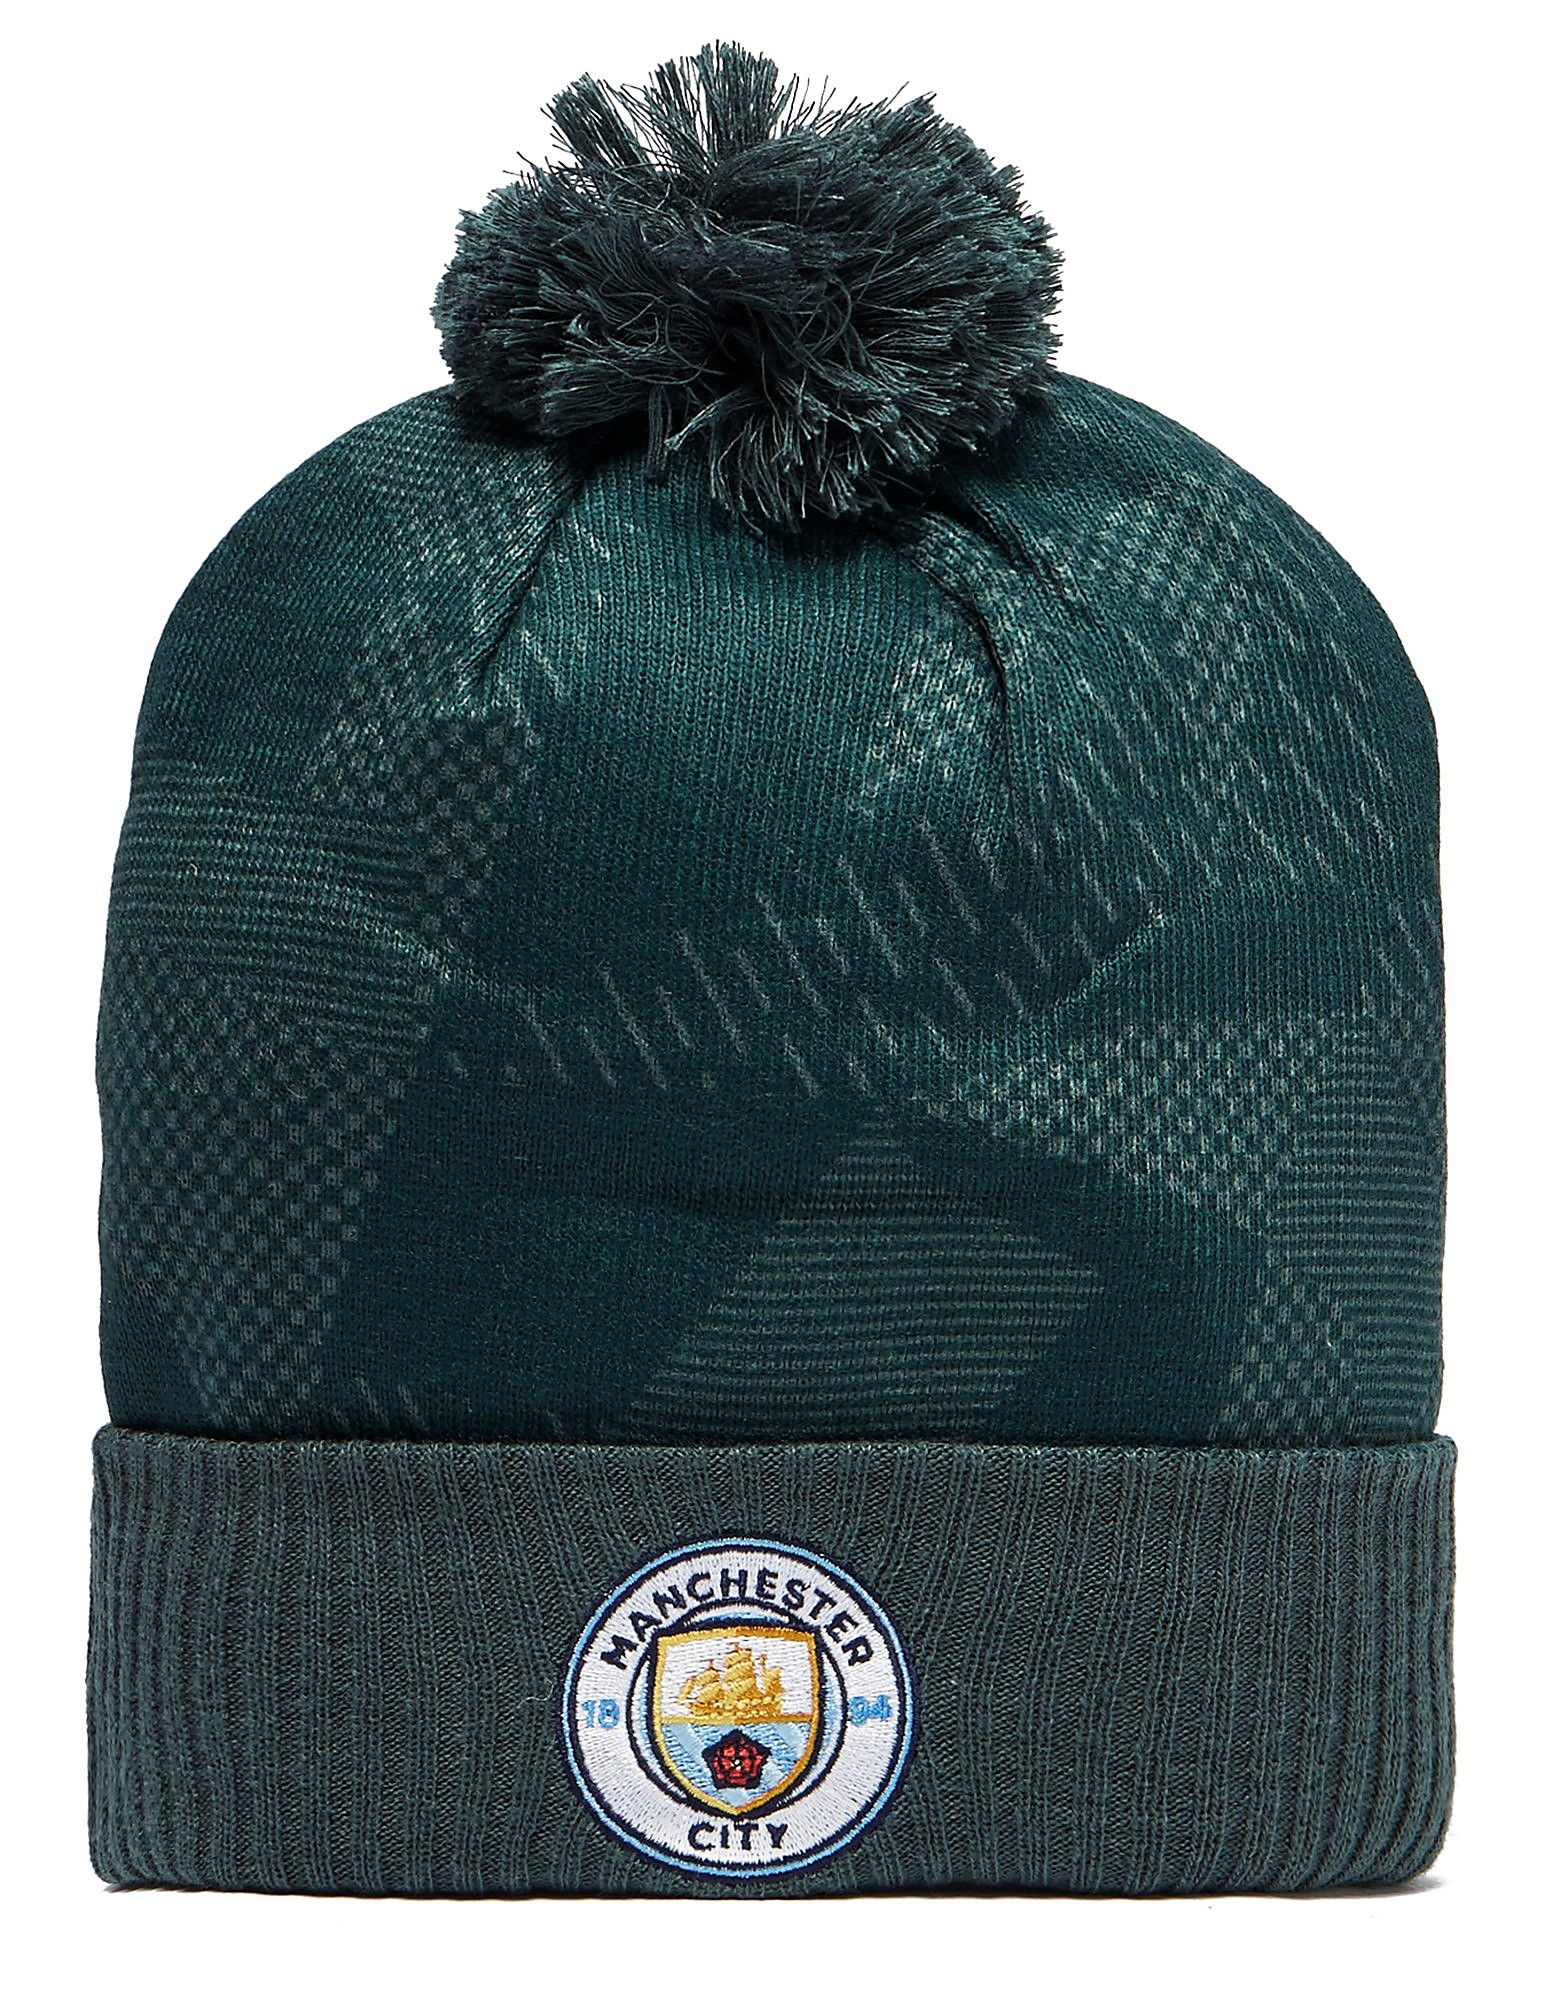 Nike Manchester City FC Beanie Hat